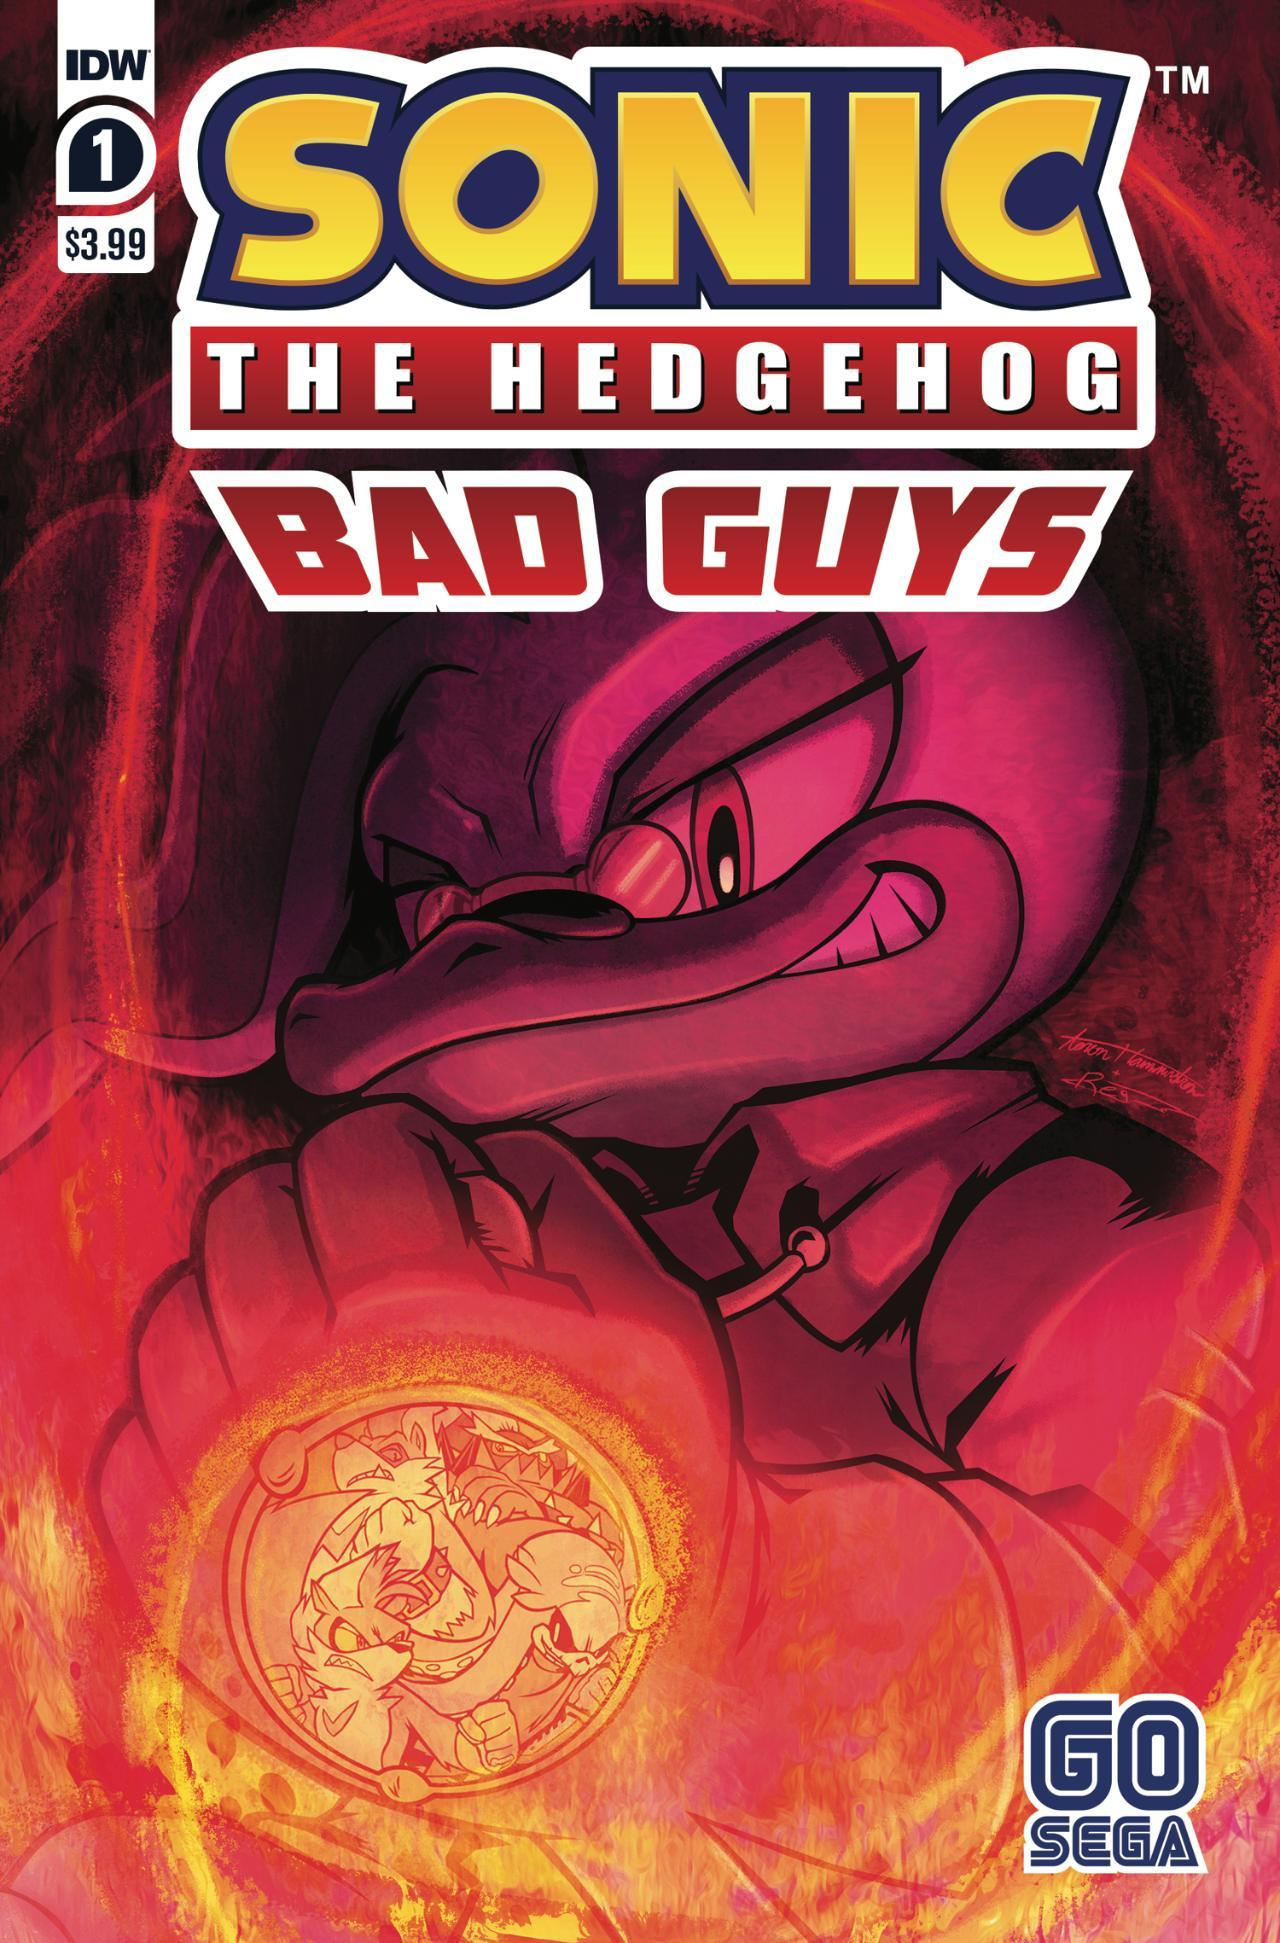 Sonic The Hedgehog - Bad Guys #1 - Cover A by Aaron Hammerstrom & Reggie Graham